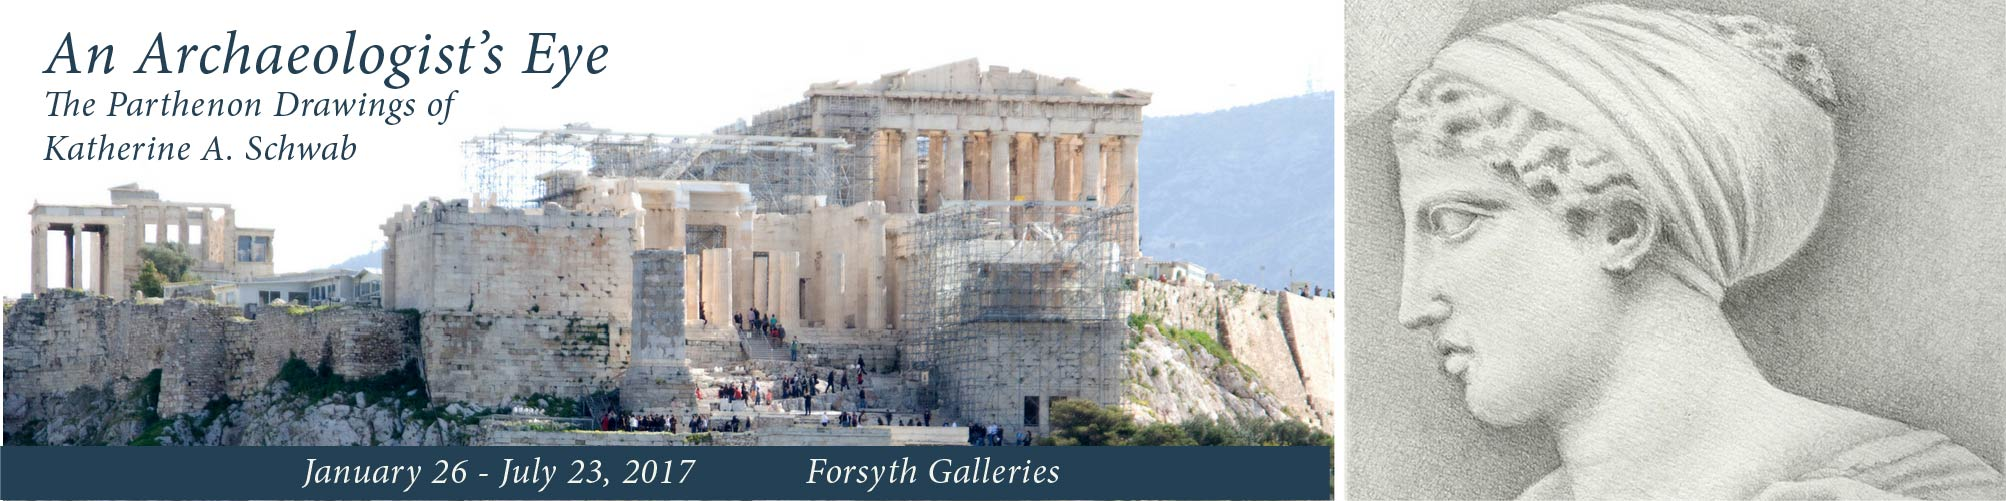 An Archaeologist's Eye: The Parthenon Drawings by Katherine A. Schwab will be on display at the Forsyth Galleries from January 17 through July 23, 2017.